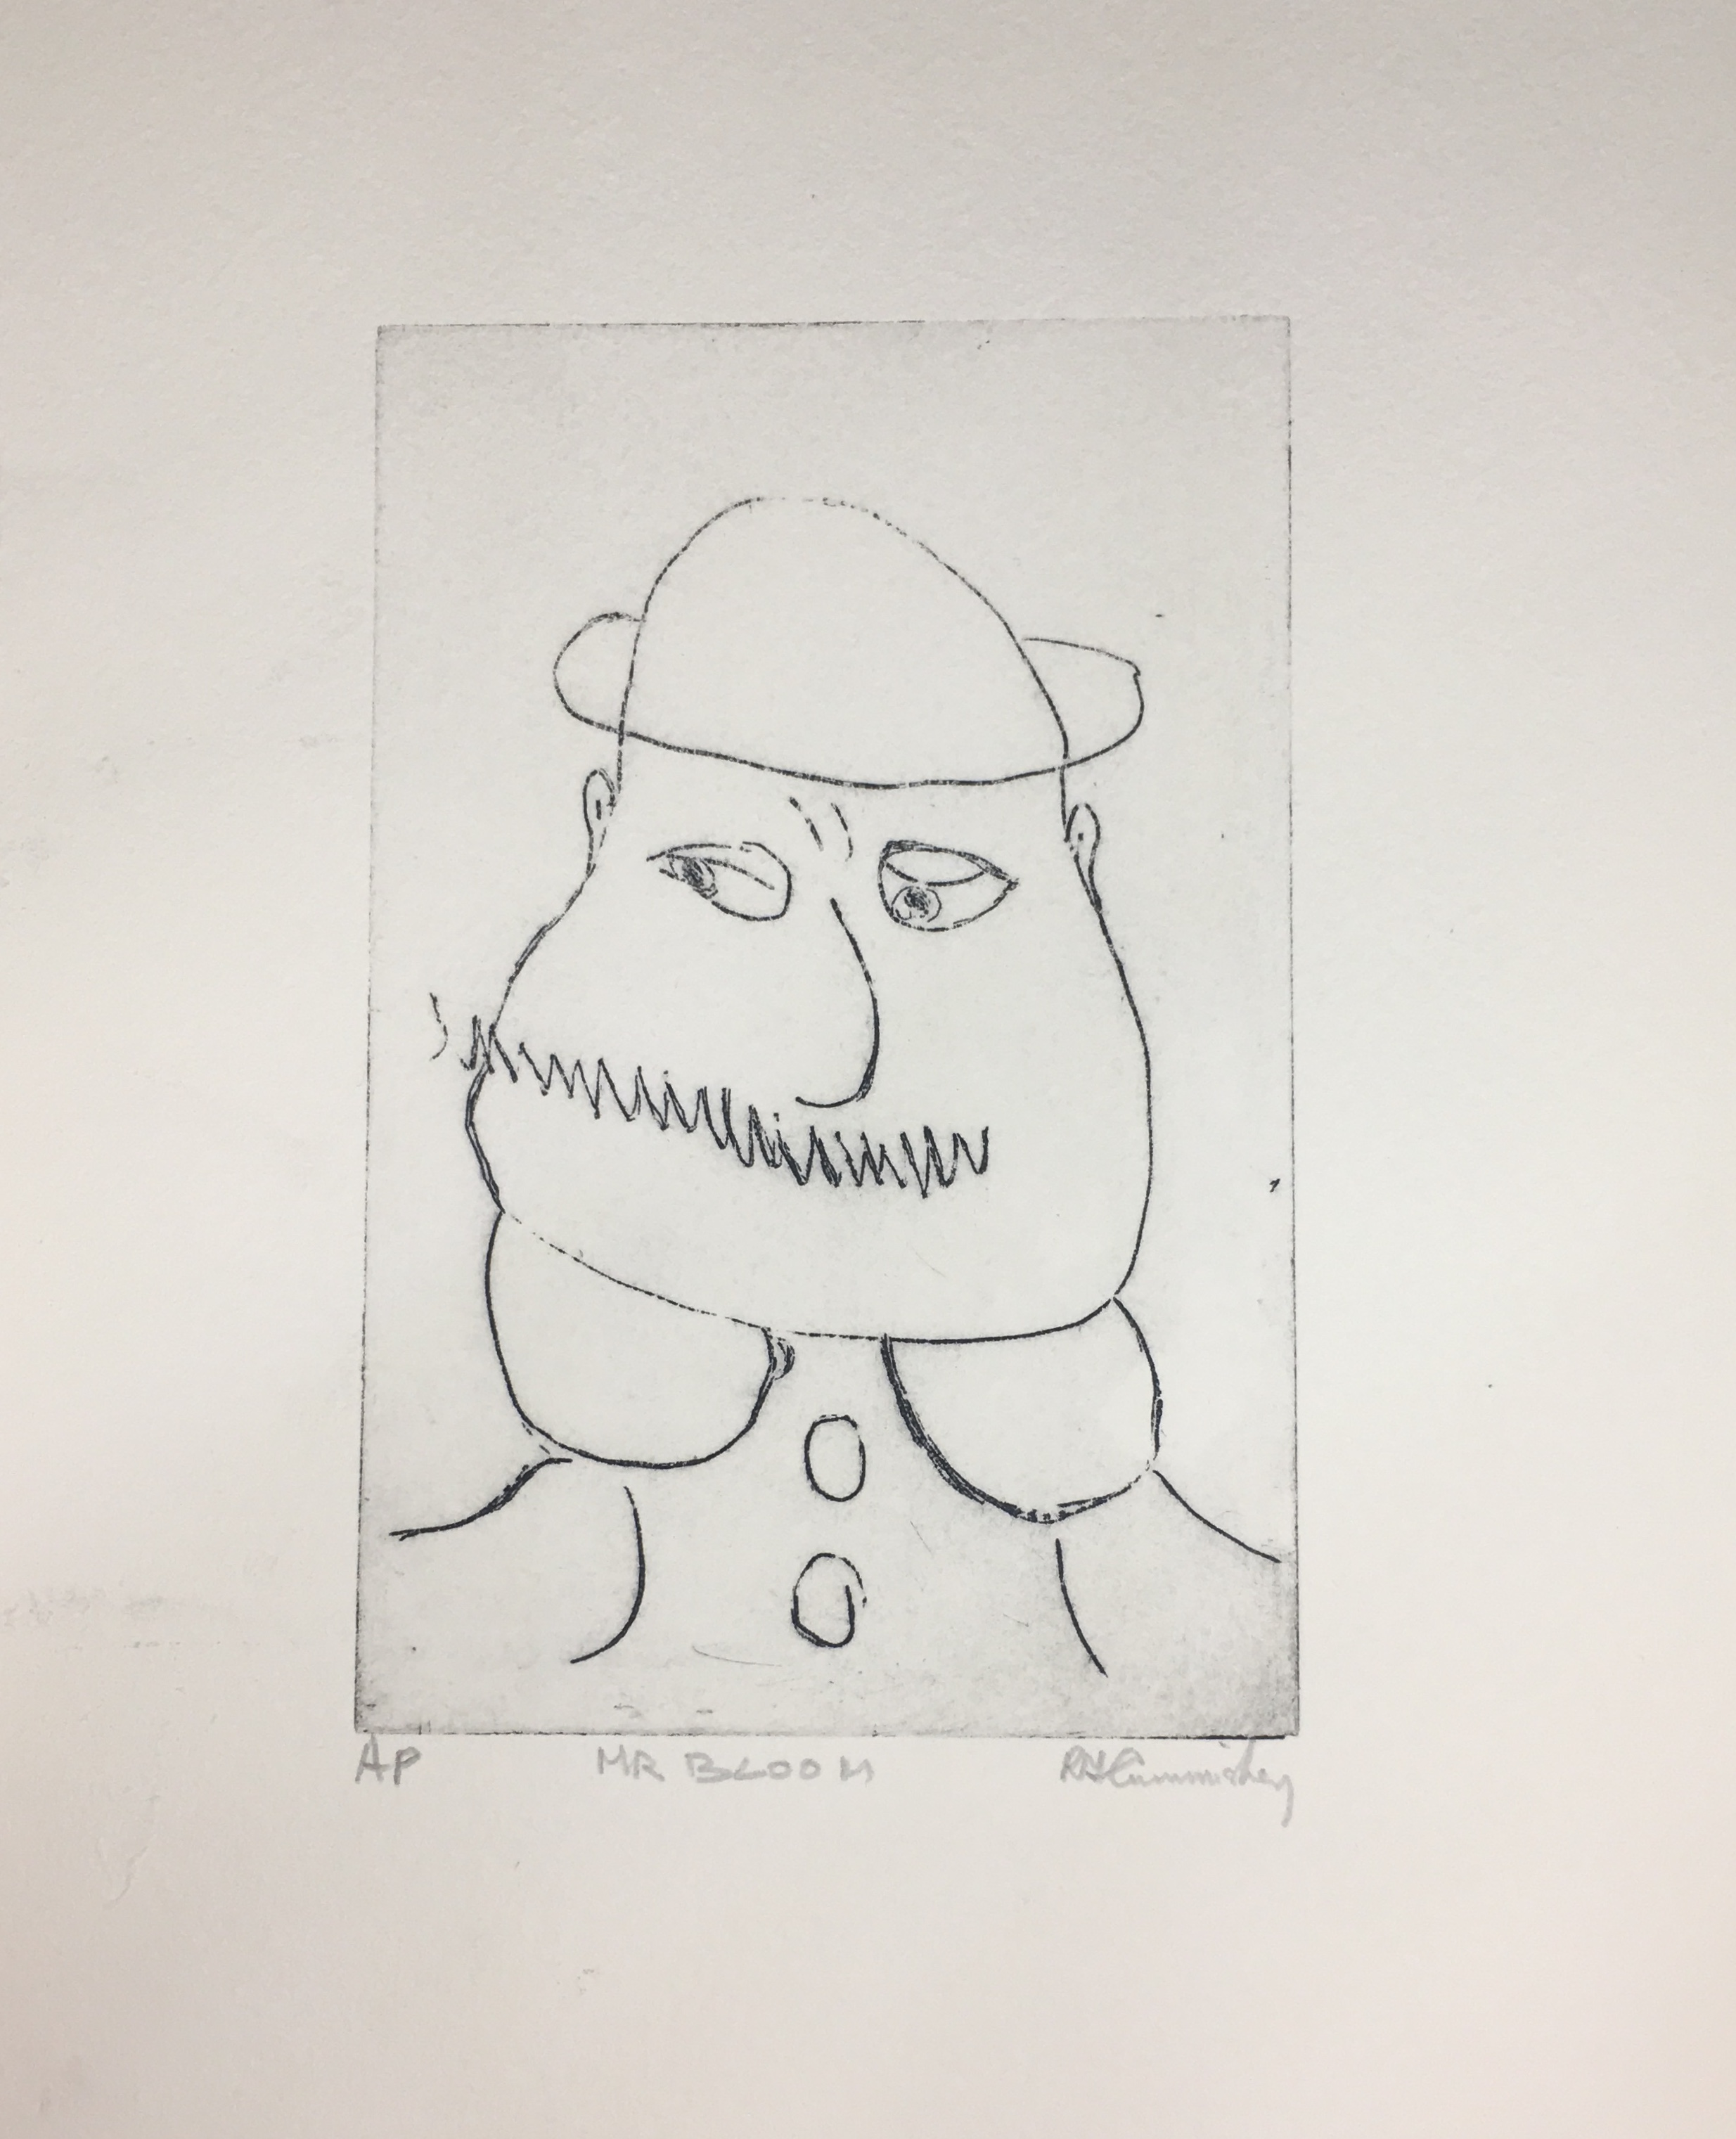 Mr Bloom - etching